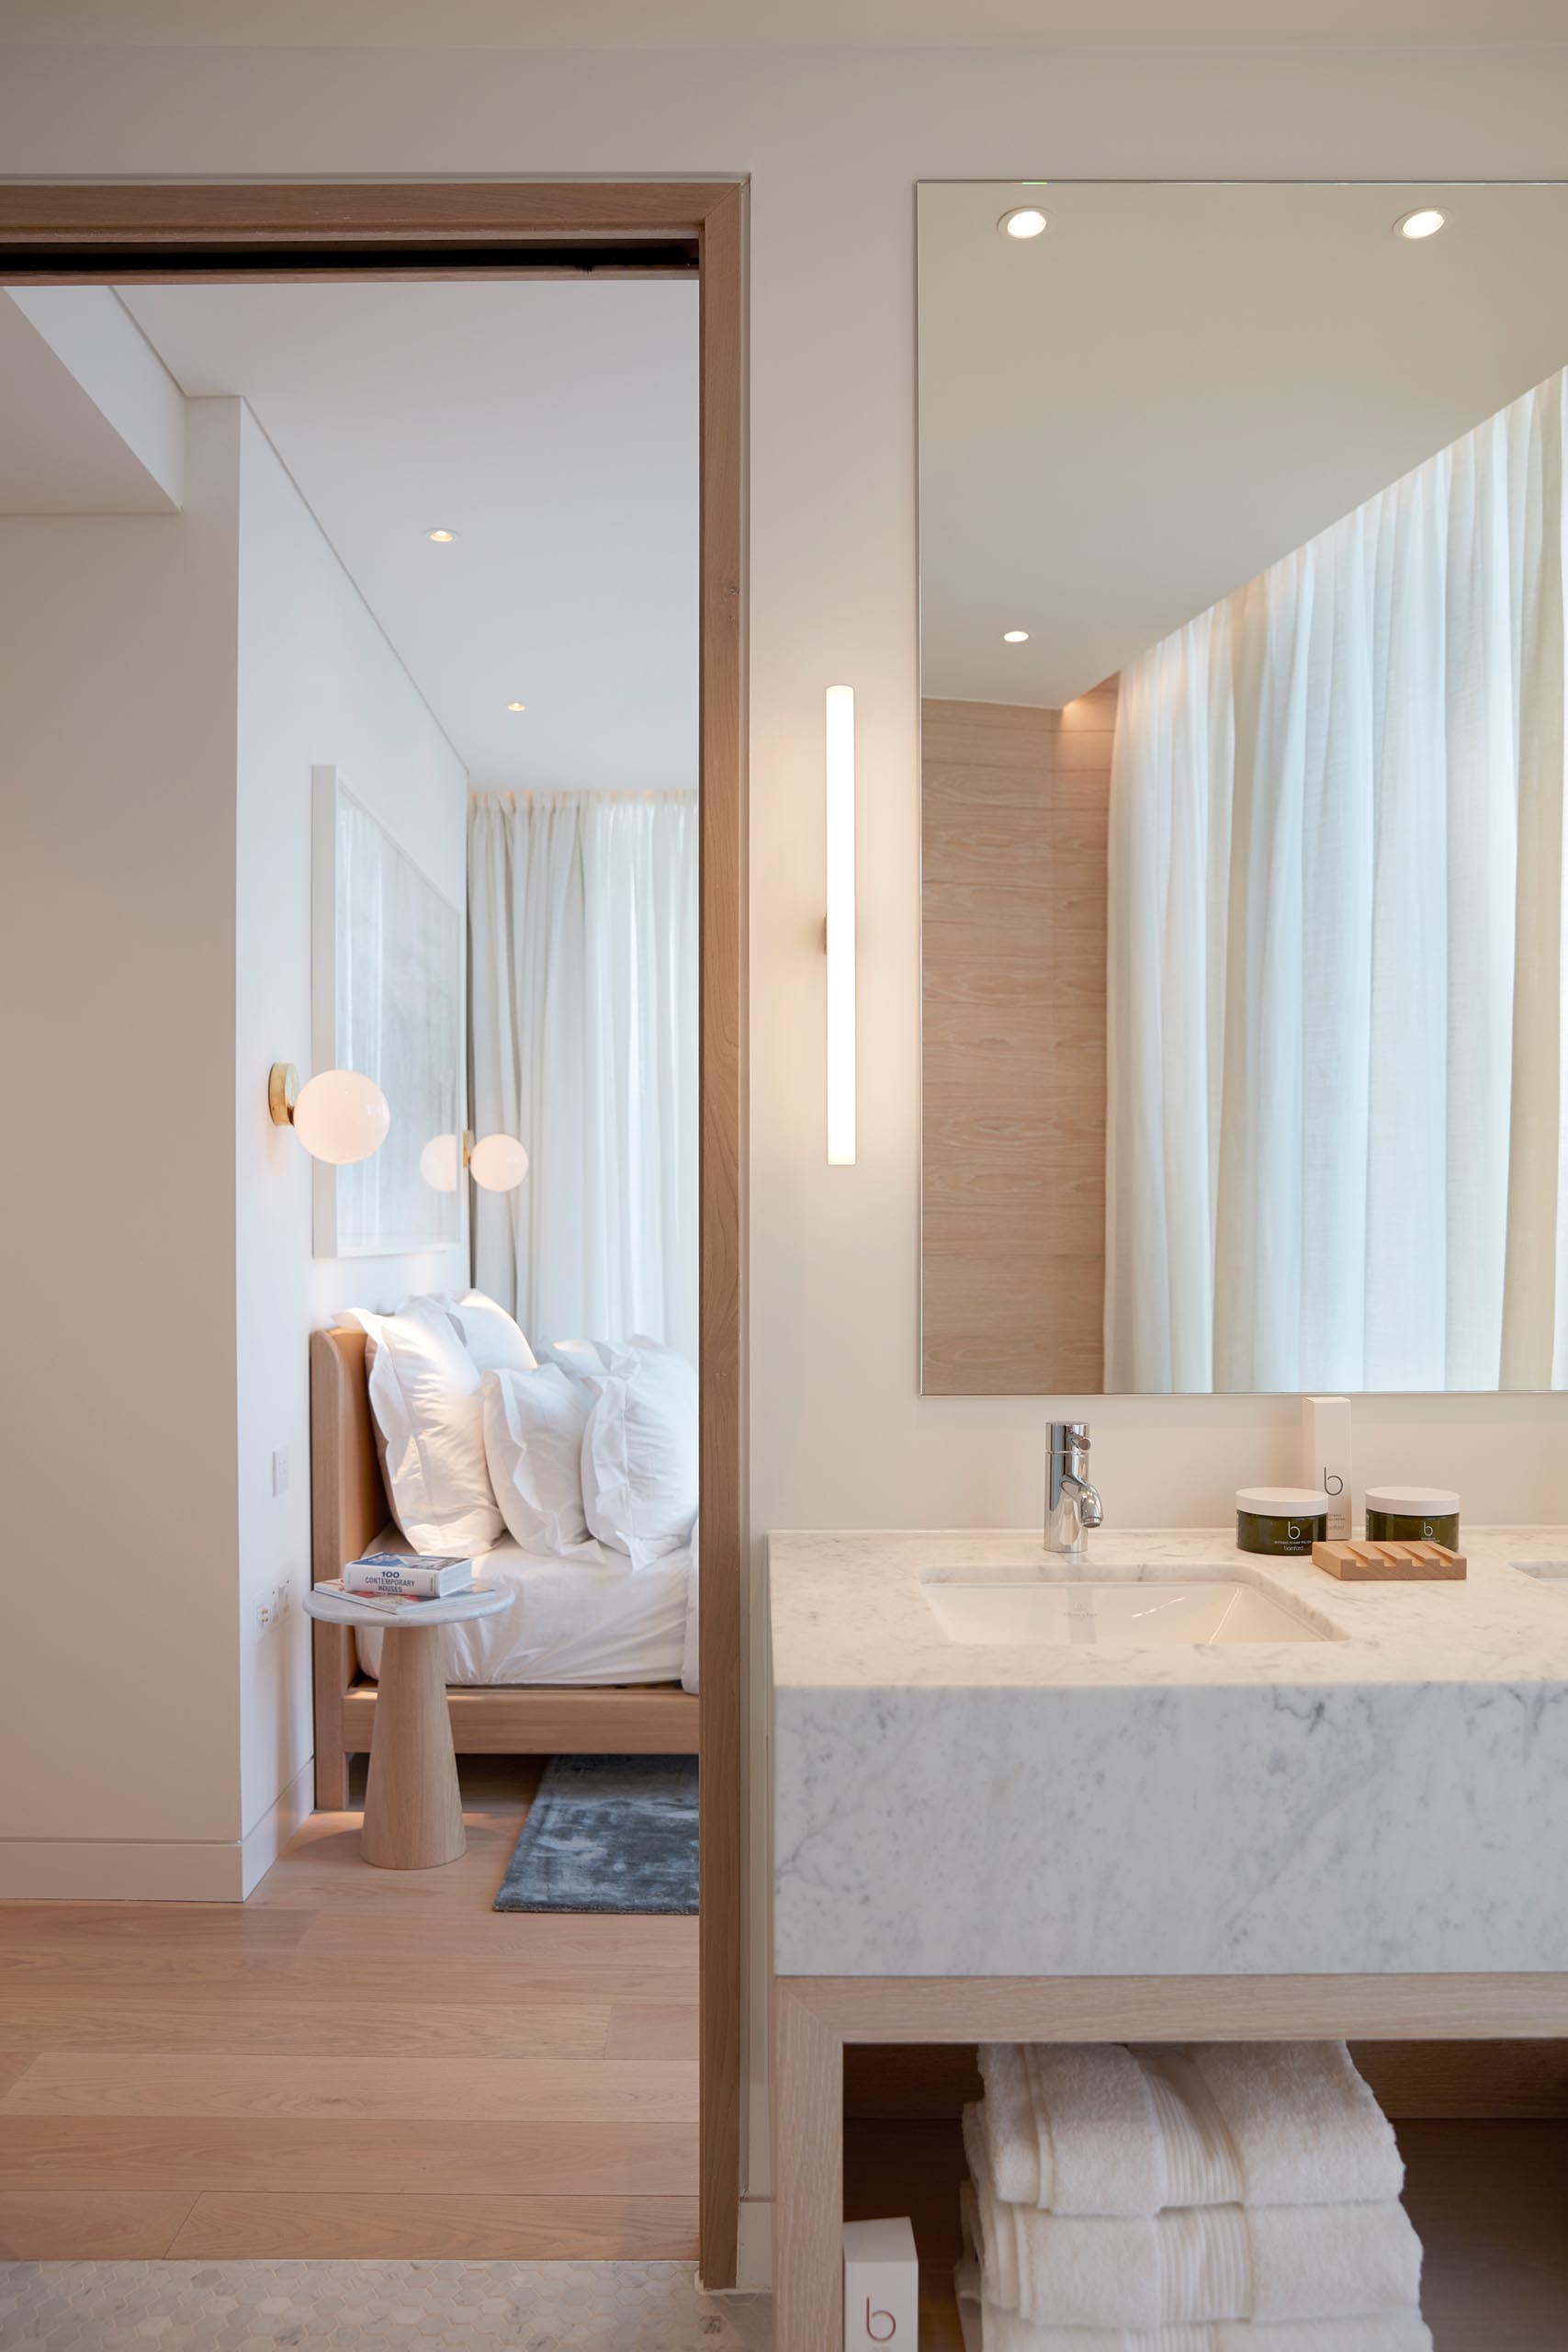 In an modern bathroom, light wood has been used for the open vanity shelving, as well as the accent wall that's installed behind the freestanding white bathtub, while the vanity countertop complements the walk-in shower.